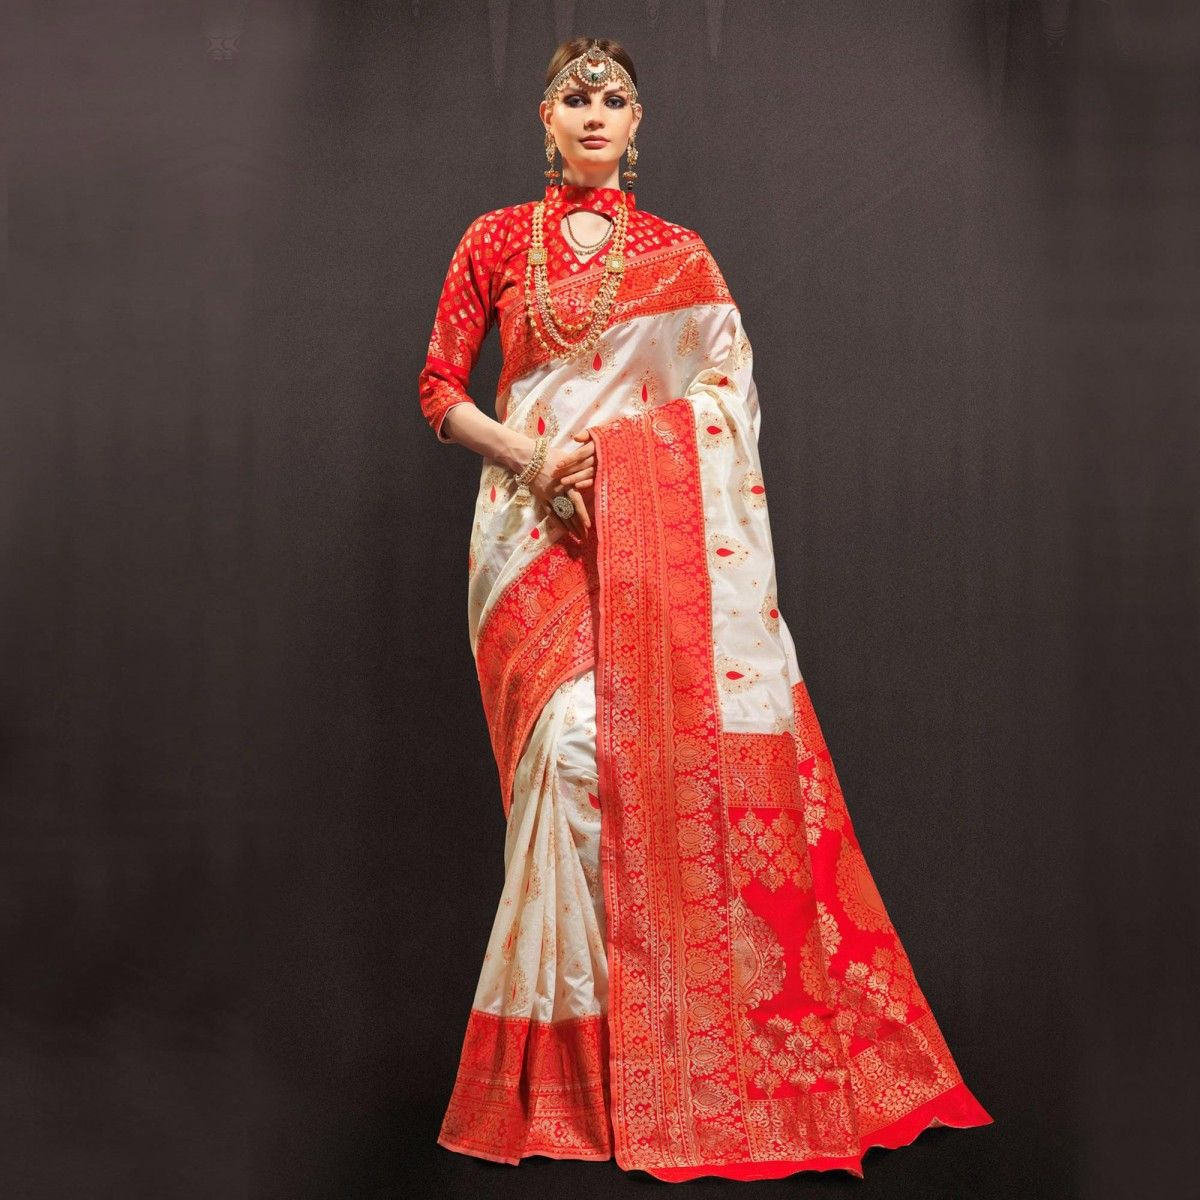 c7ebf0fa1b0d7 Buy Red - White Weaving Work Silk Saree online India